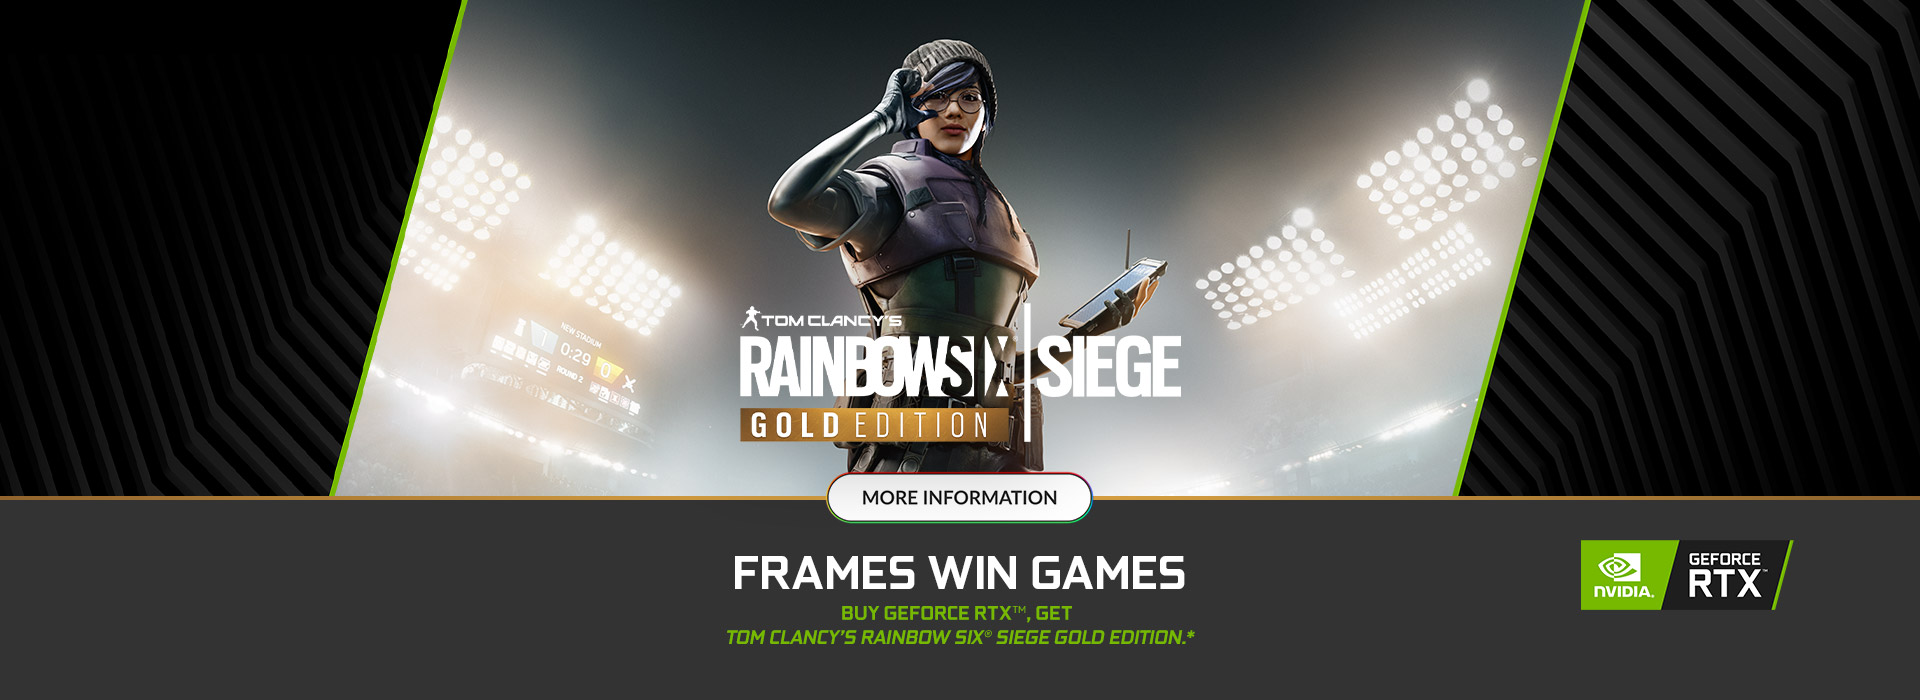 NVIDIA Rainbow Six: Siege Bundle